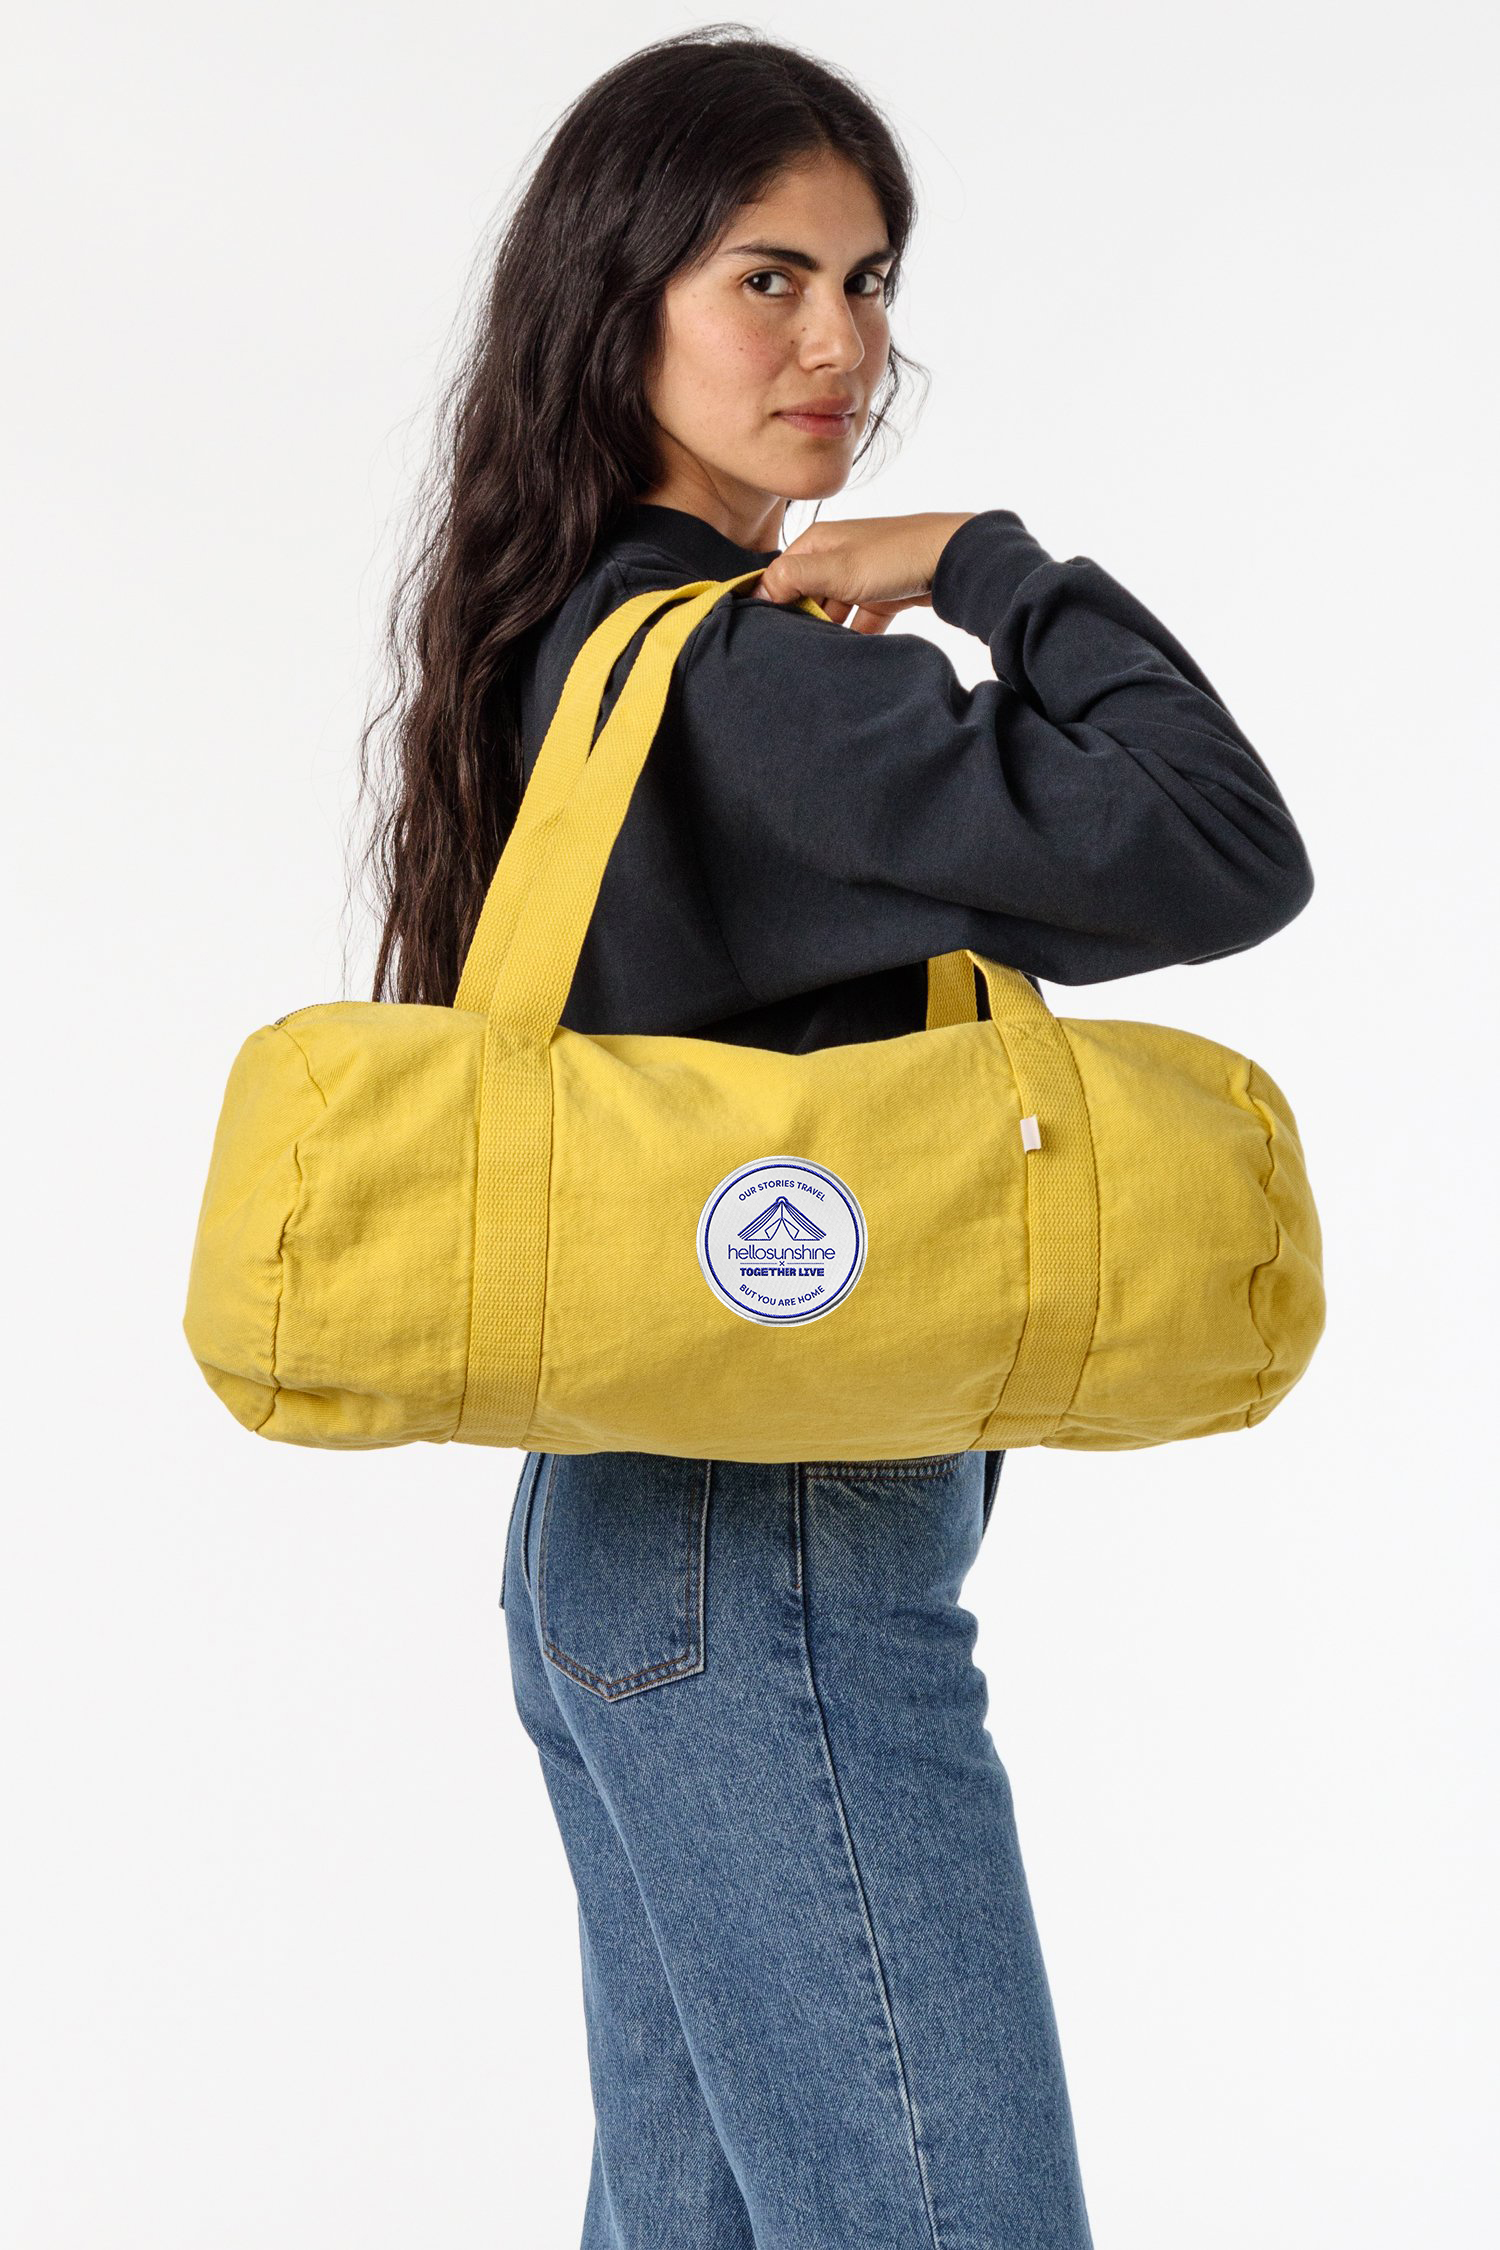 GymBag_Yellow.jpg